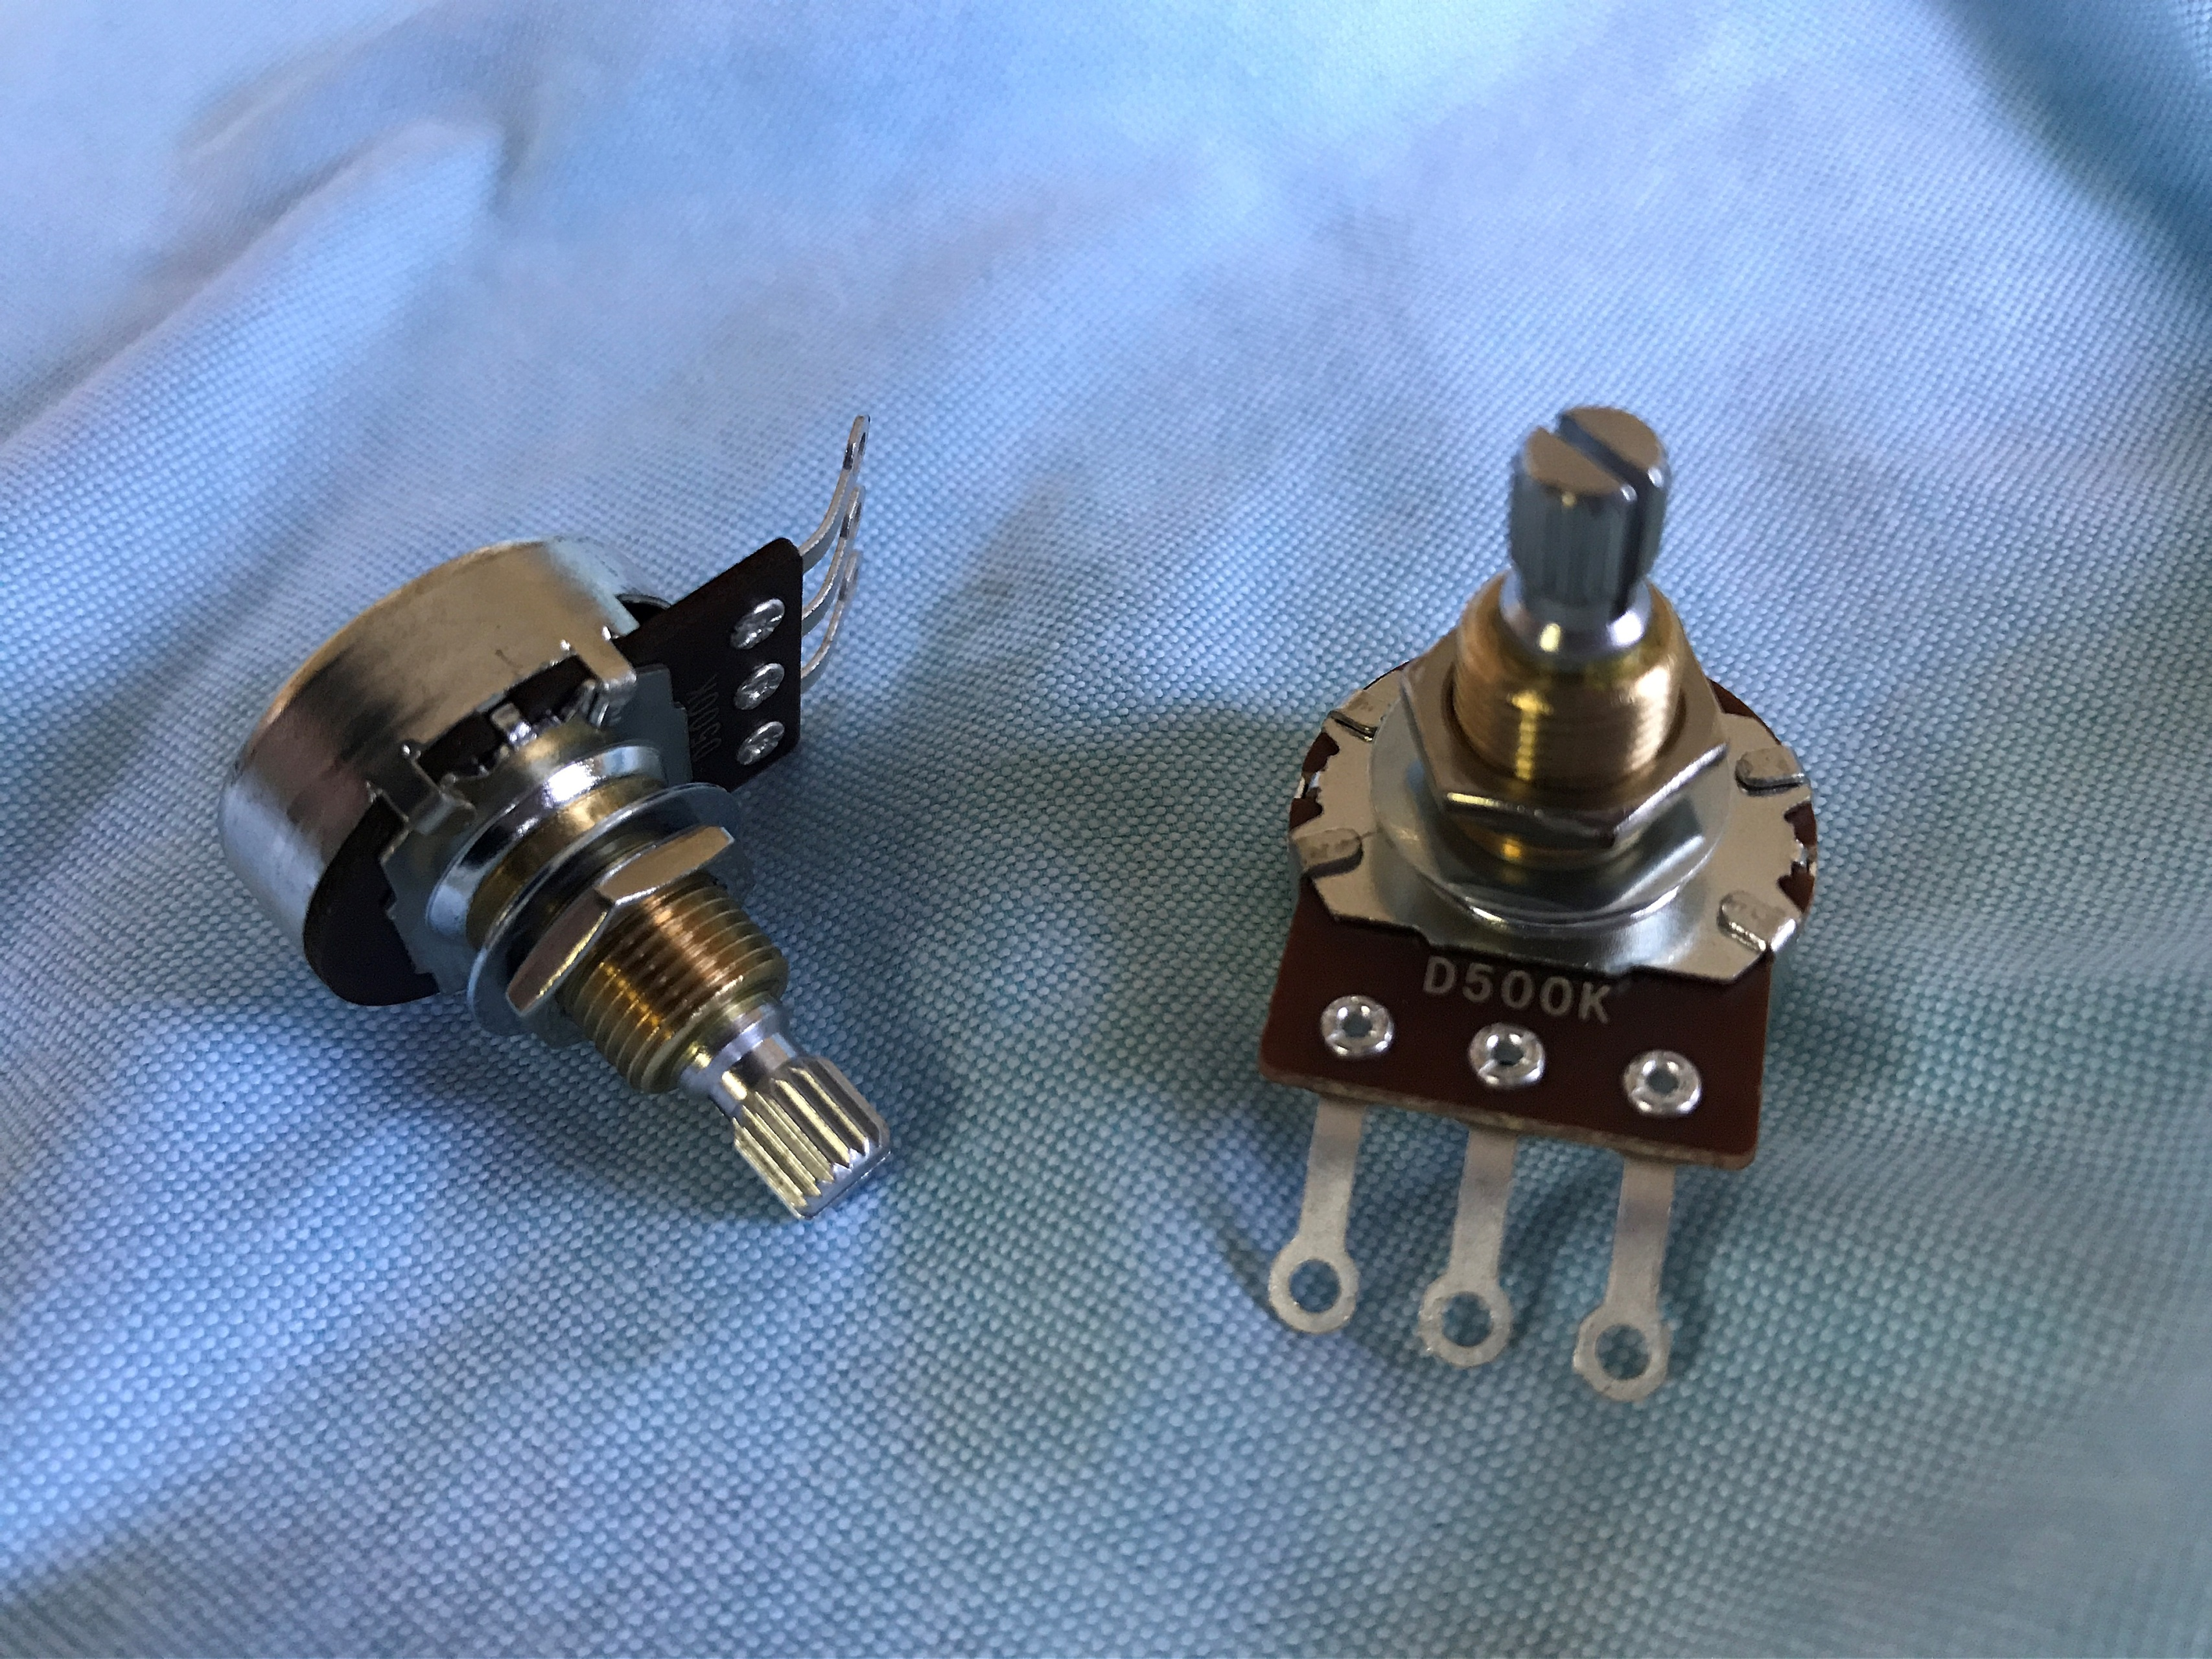 s213069964309739773_p146_i4_w2560 epiphone flying v premium wiring harness with paper in oil tone cap flying v wiring harness at gsmx.co